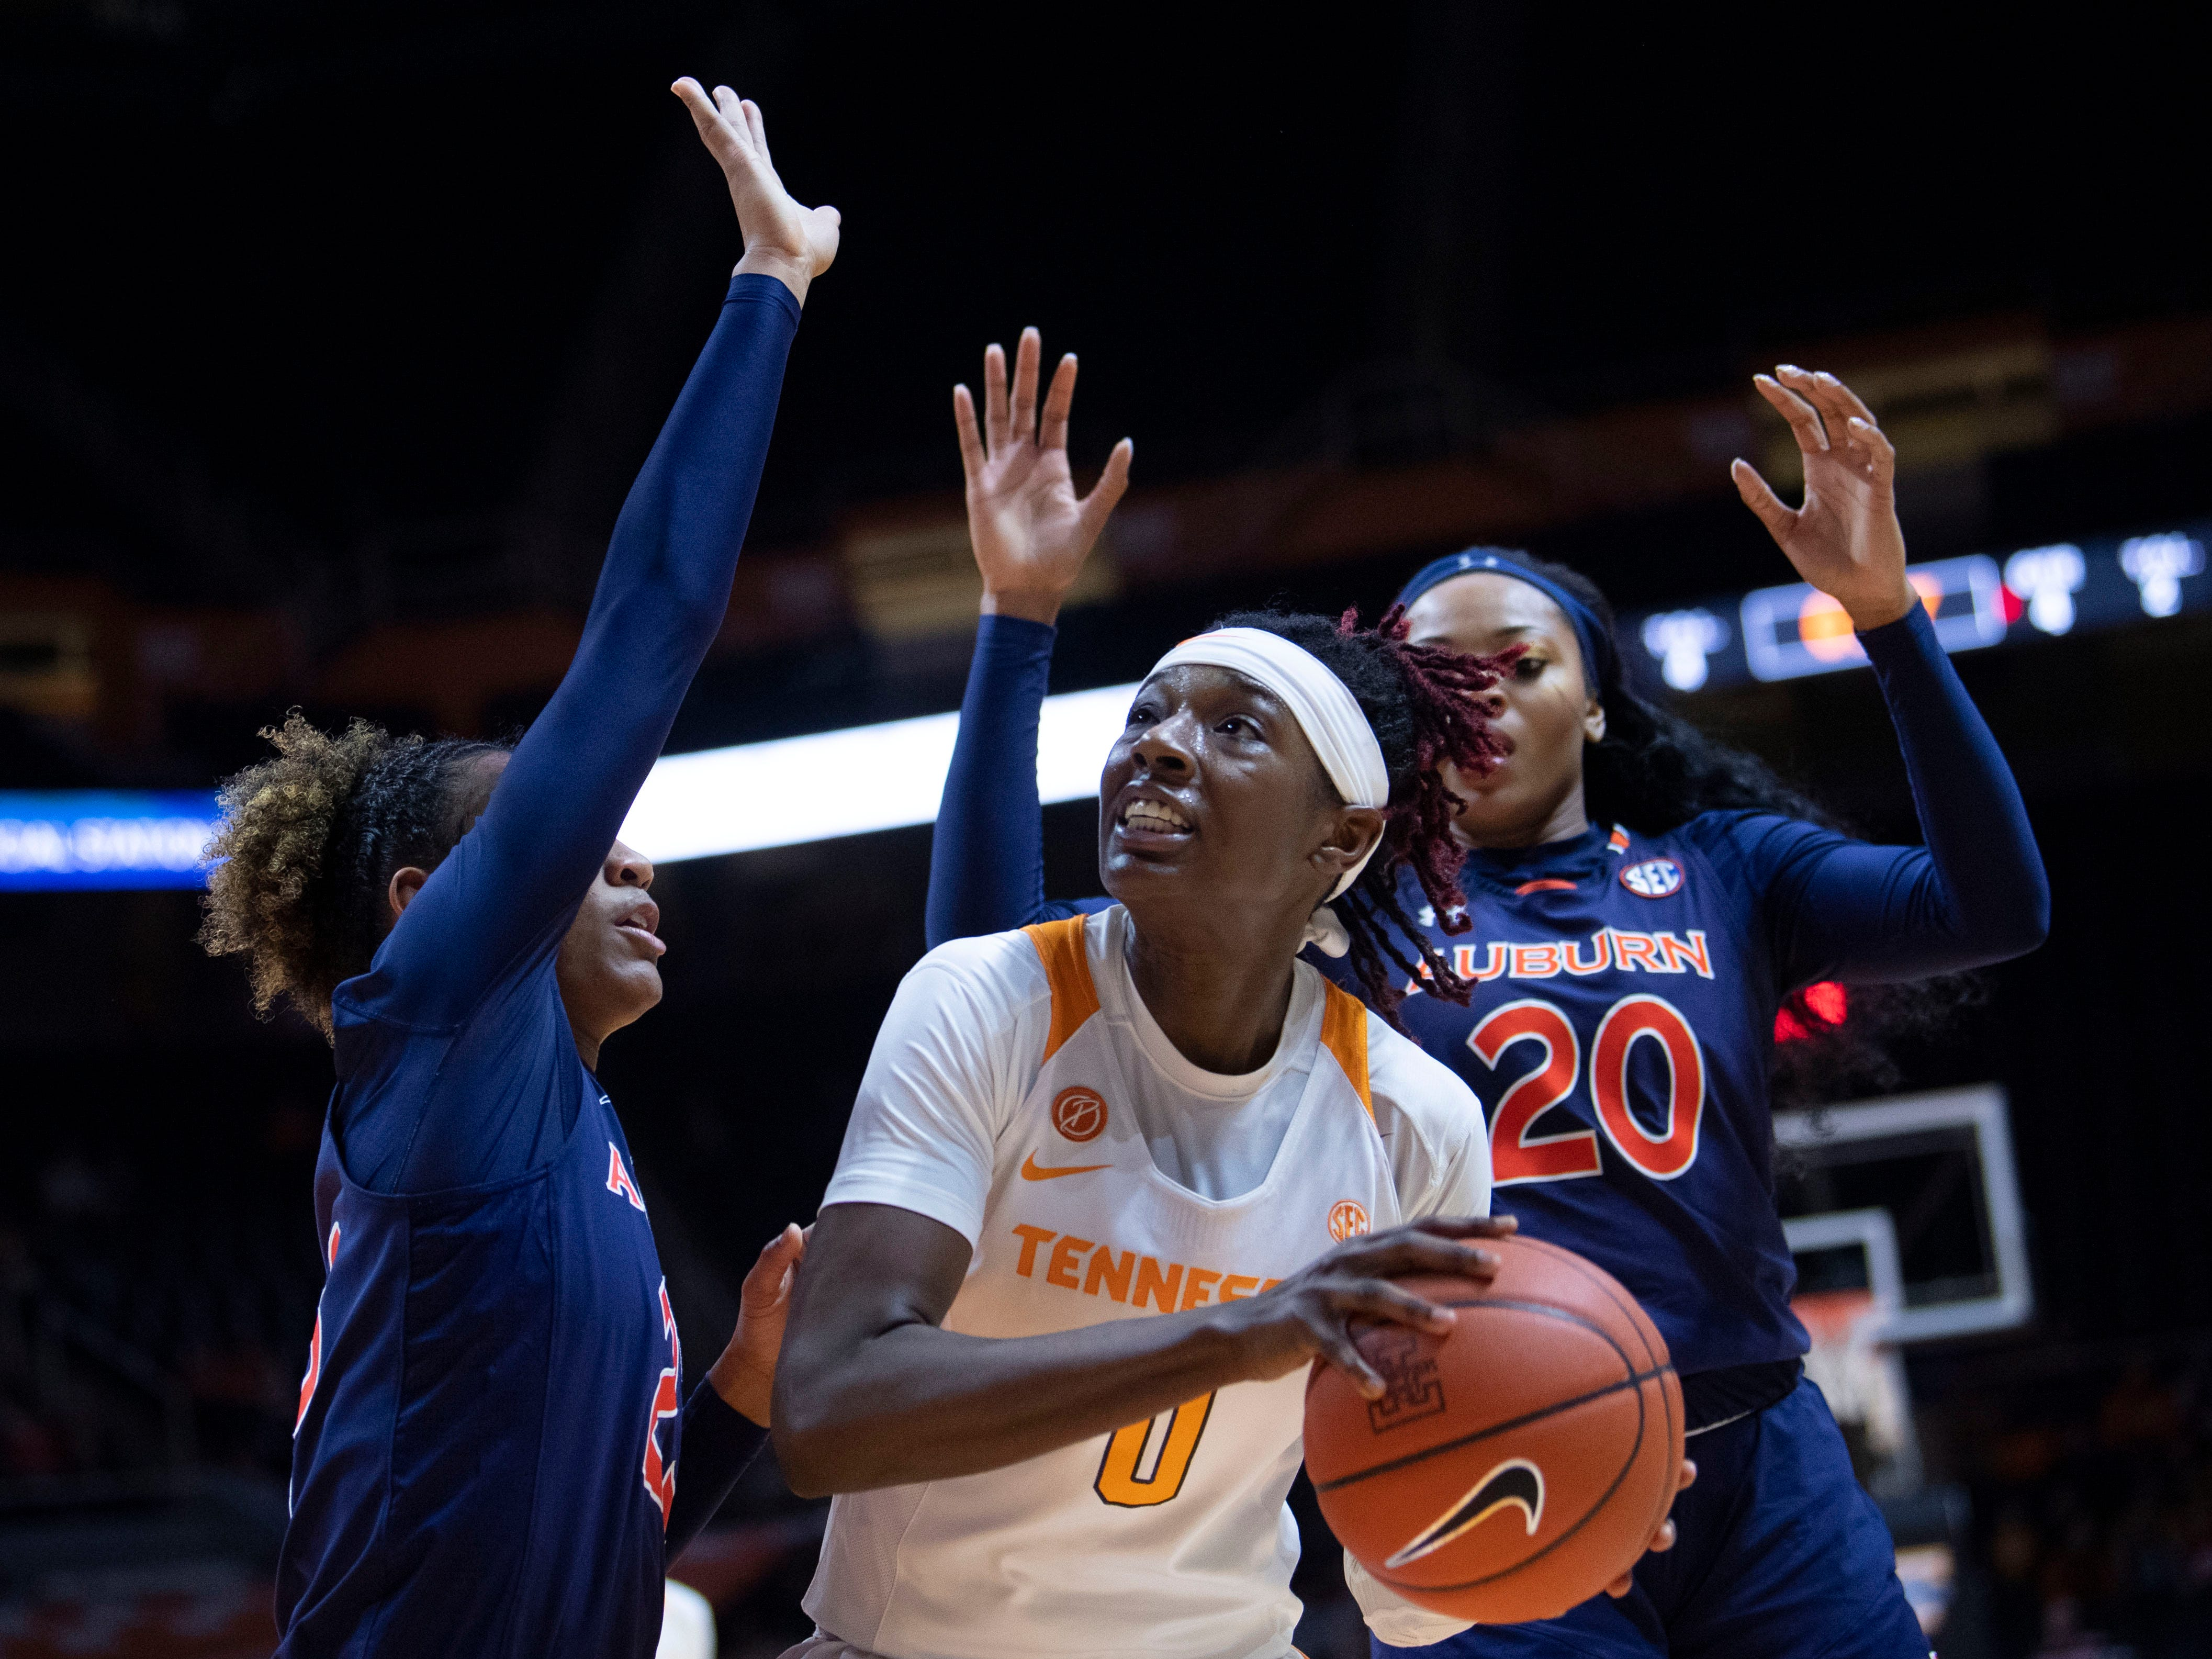 Tennessee's Rennia Davis (0) looks for an open shot while guarded by Auburn's Crystal Primm (23) and Unique Thompson (20) on Thursday, February 14, 2019.